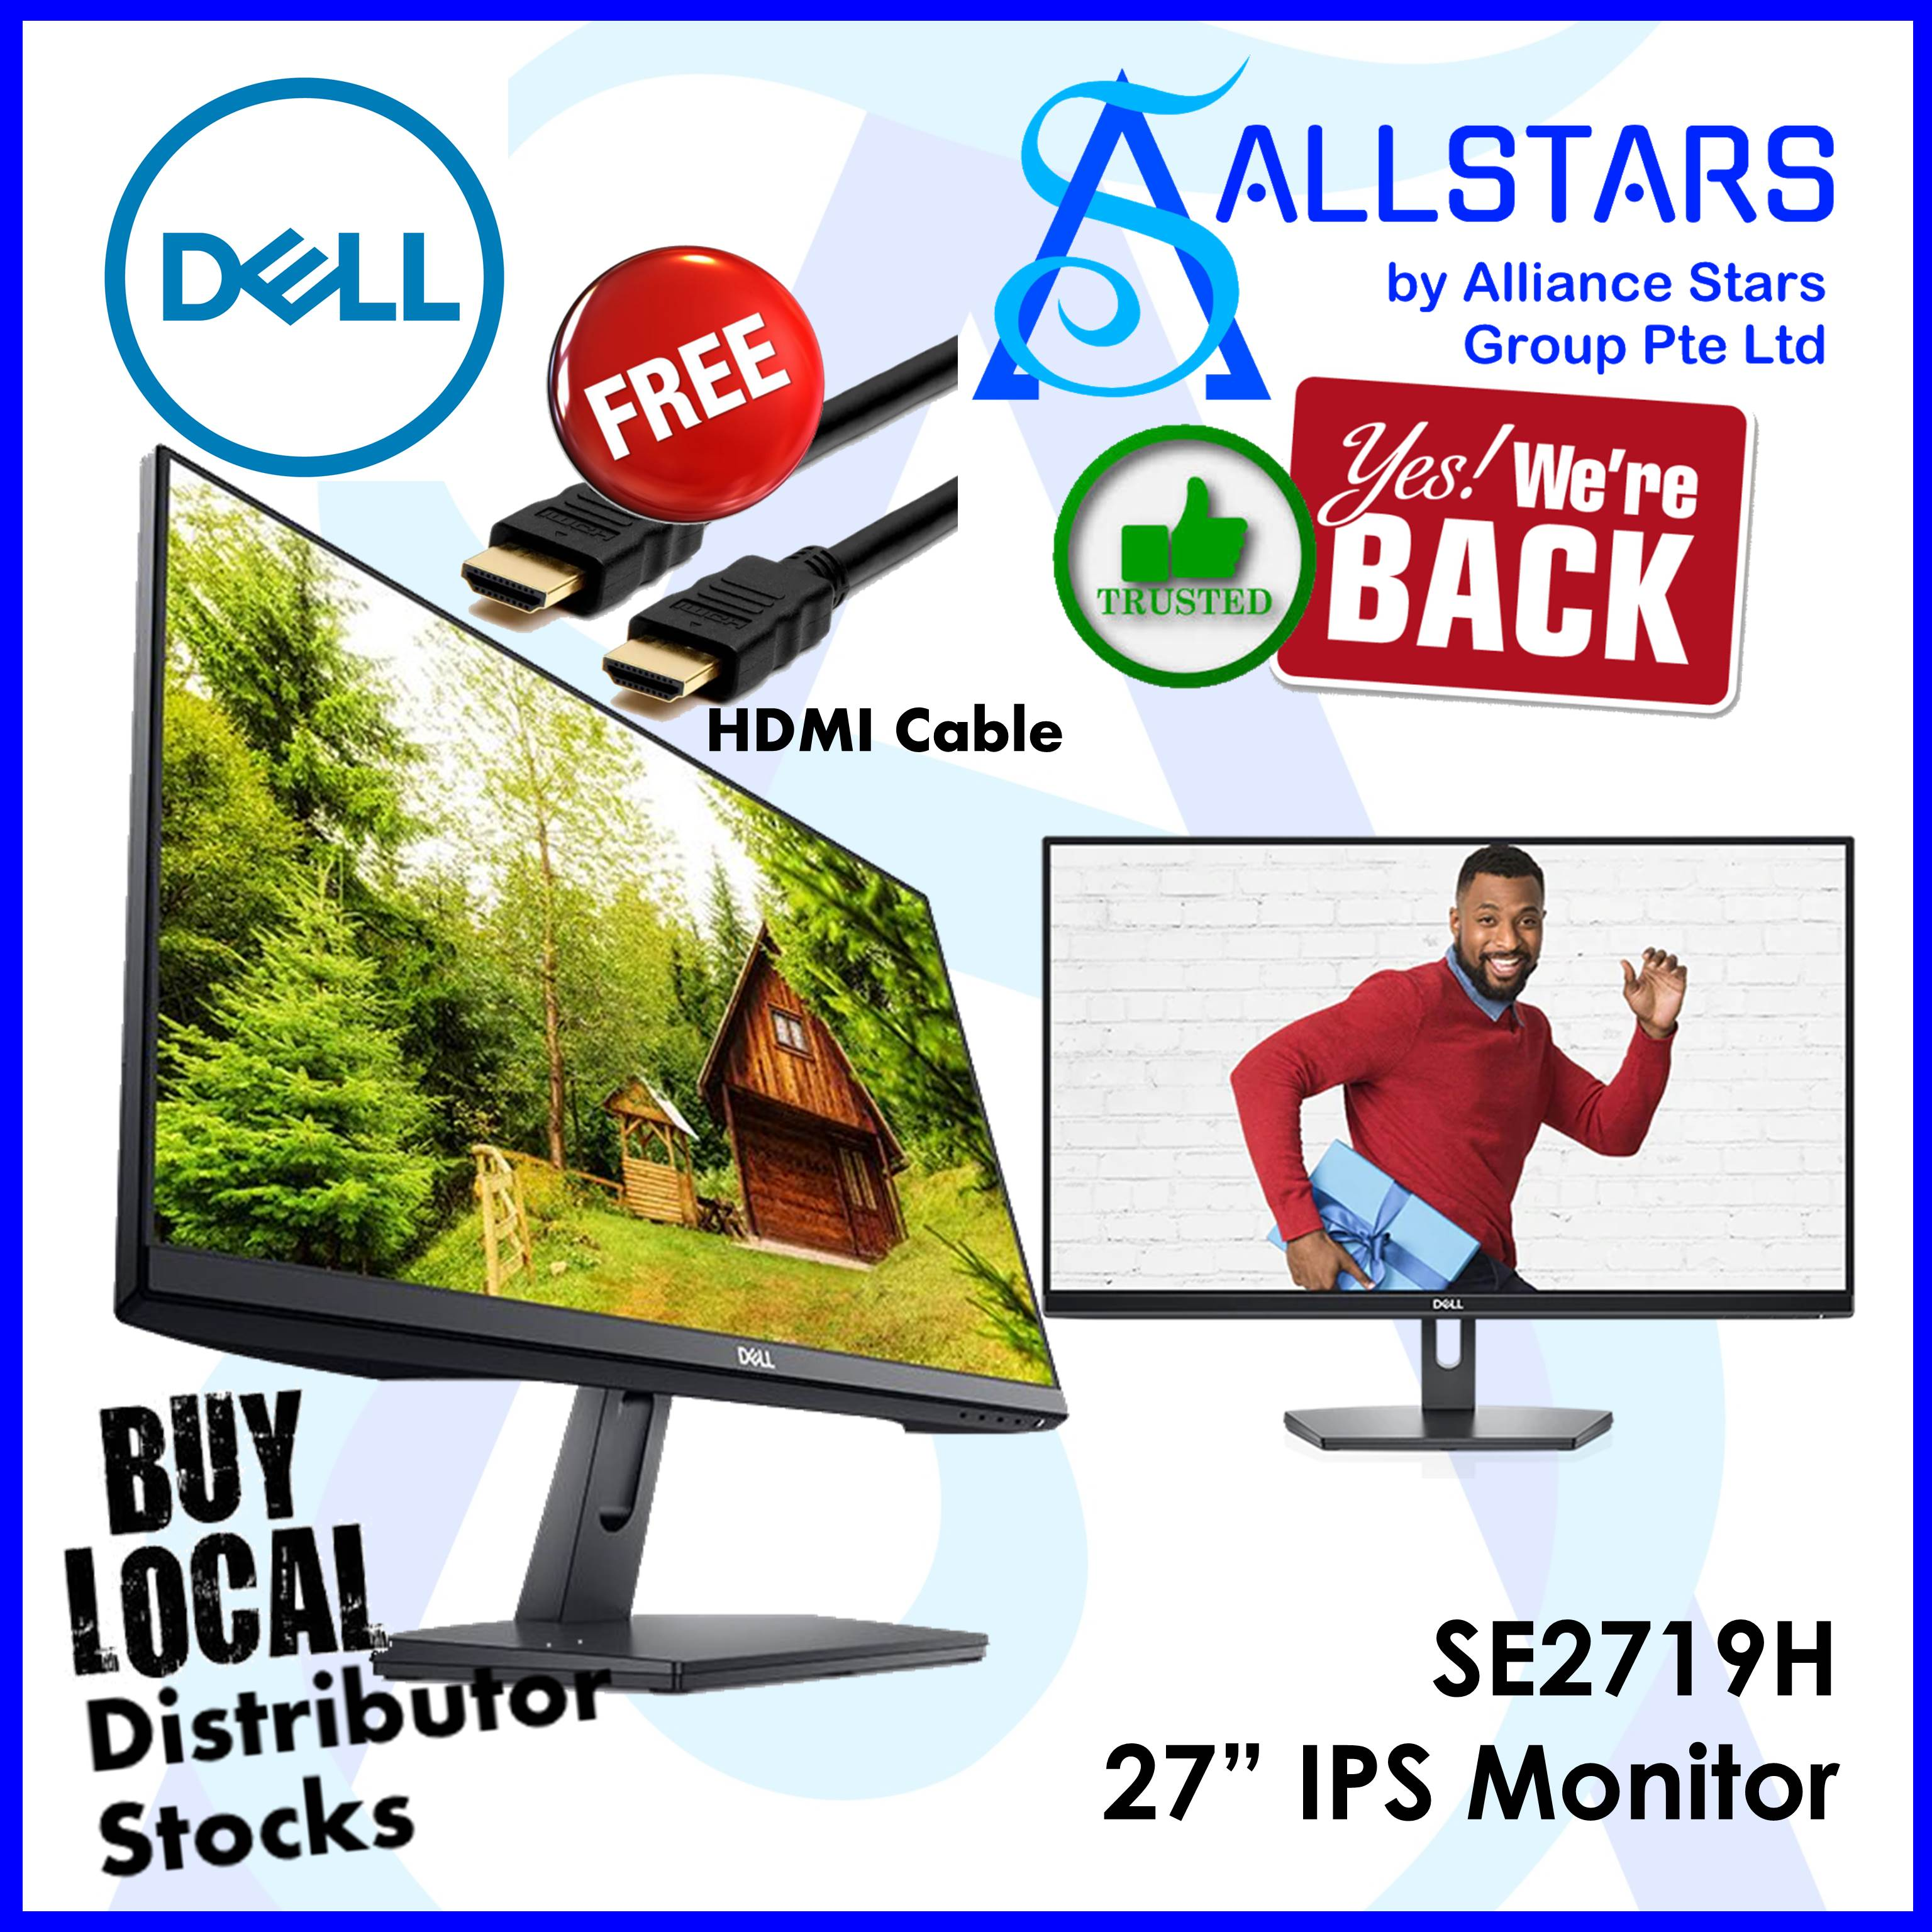 (ALLSTARS : We are Back / CNY2020 PROMO) **FREE HDMI Cable** Dell 27 inch  SE2719H Full HD IPS 3-sides thin bezel Monitor (Local Warranty 3years on-site by Dell Singapore) *FREE HDMI Cable*